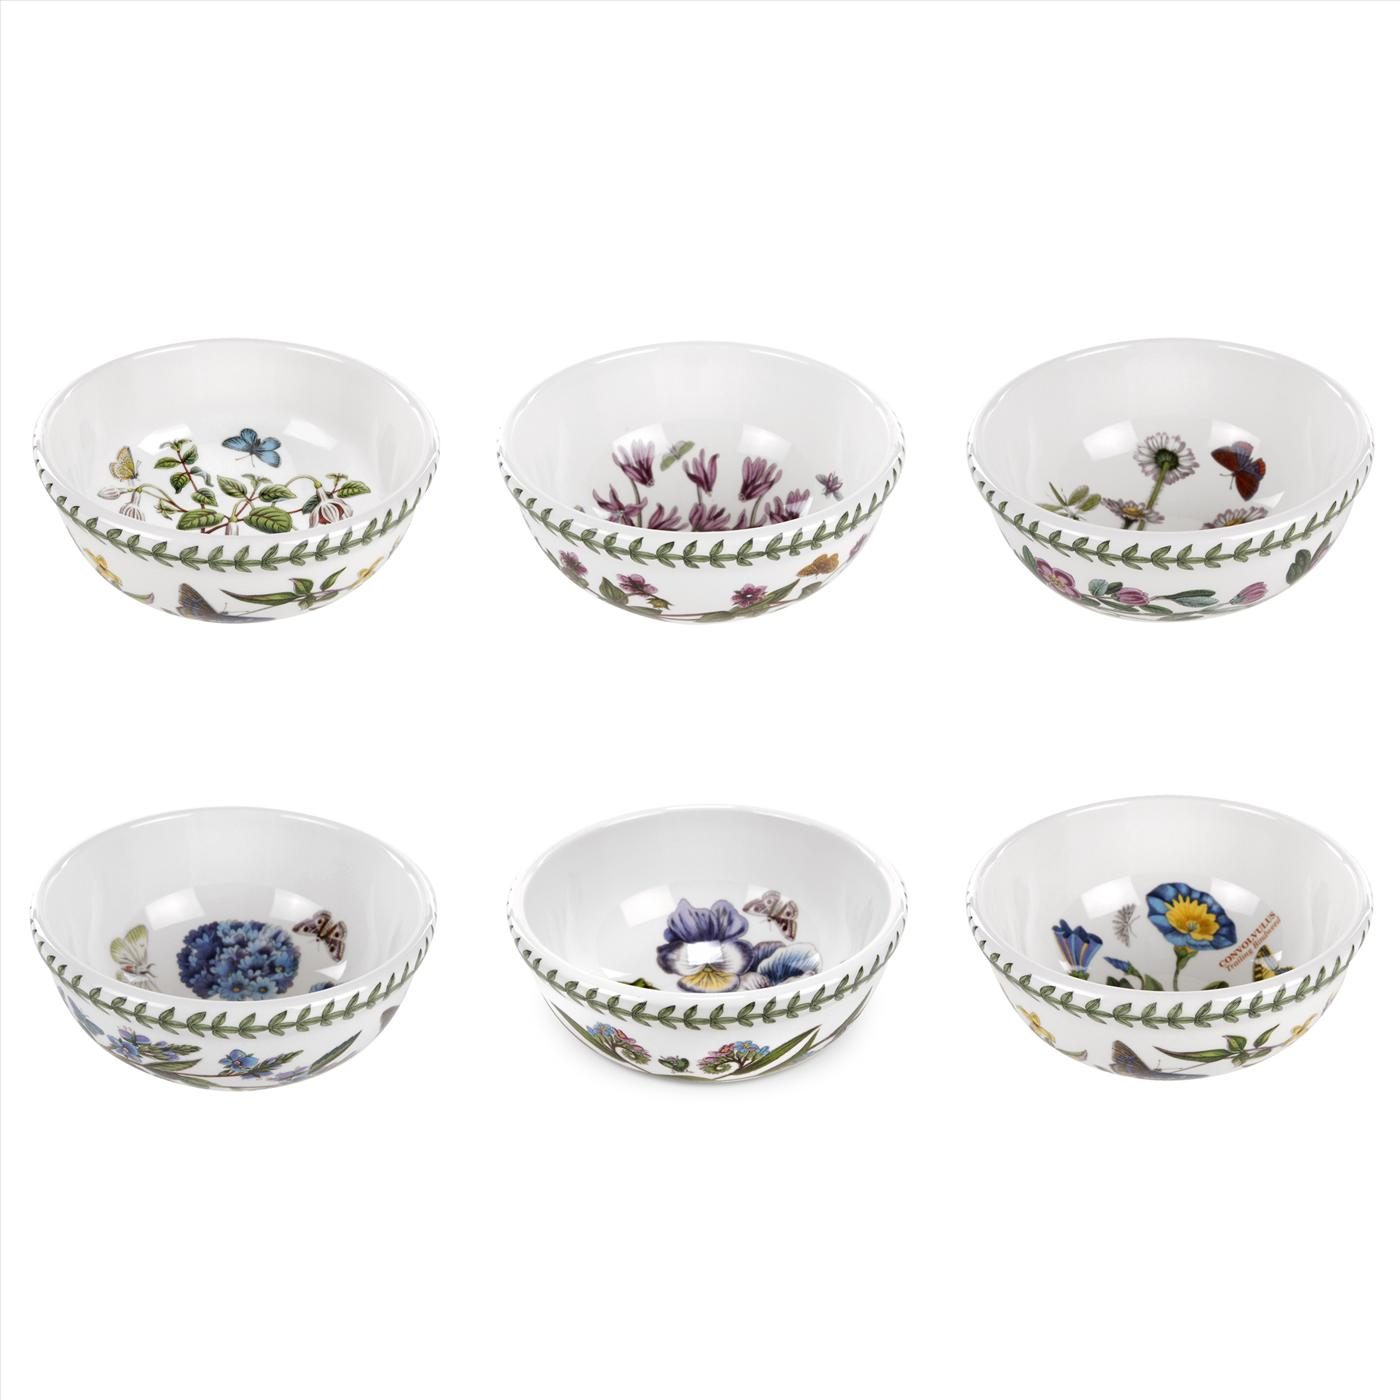 Portmeirion Botanic Garden Set of 6 Individual Fruit/Salad Bowls Assorted Motifs image number 0